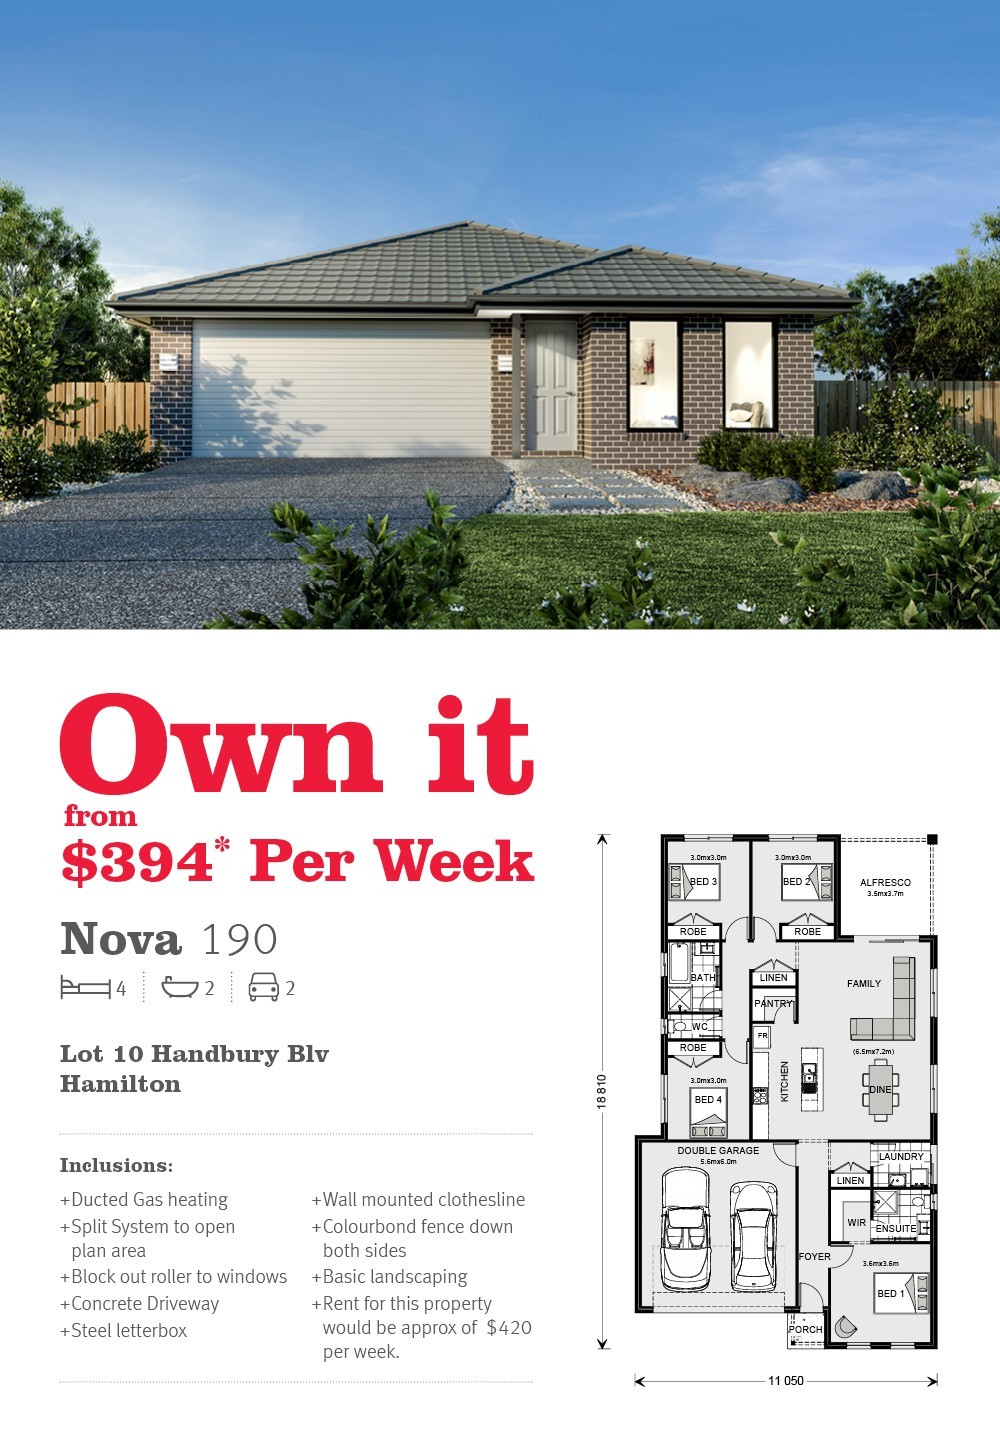 House and land in Hamilton from just $394 per week!*